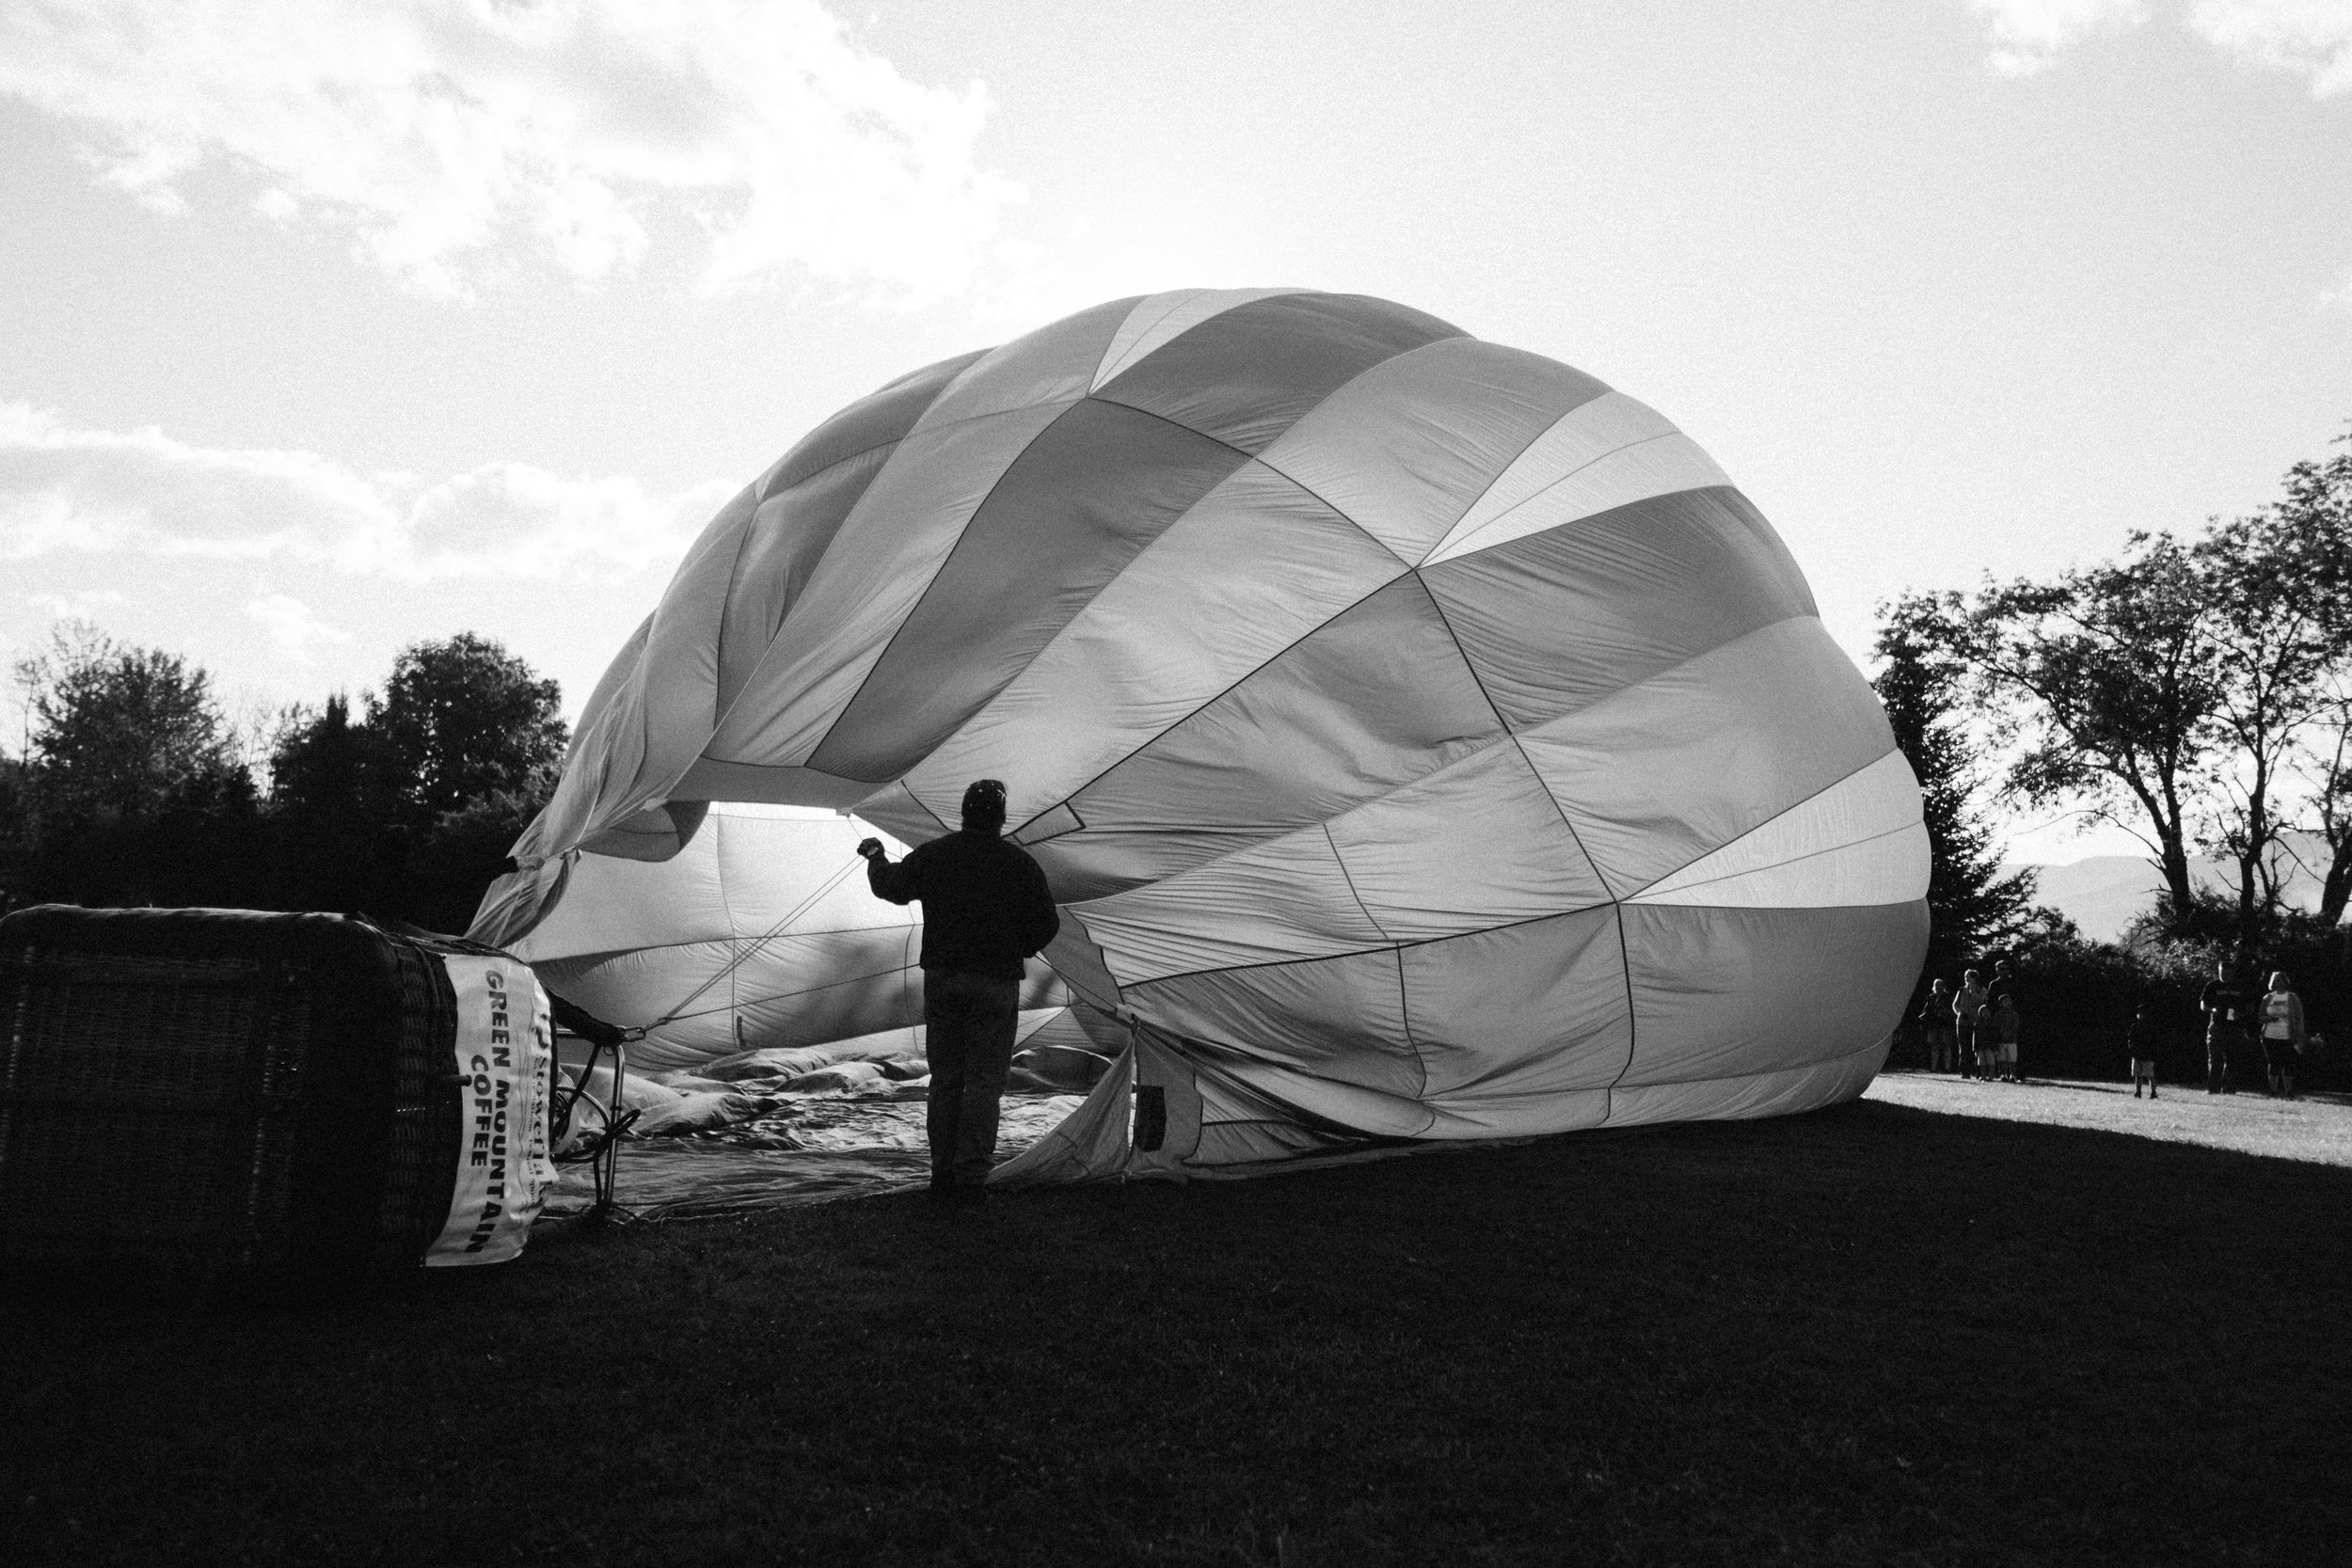 Stowe_Hot_Air_Balloon_Festival8.jpg